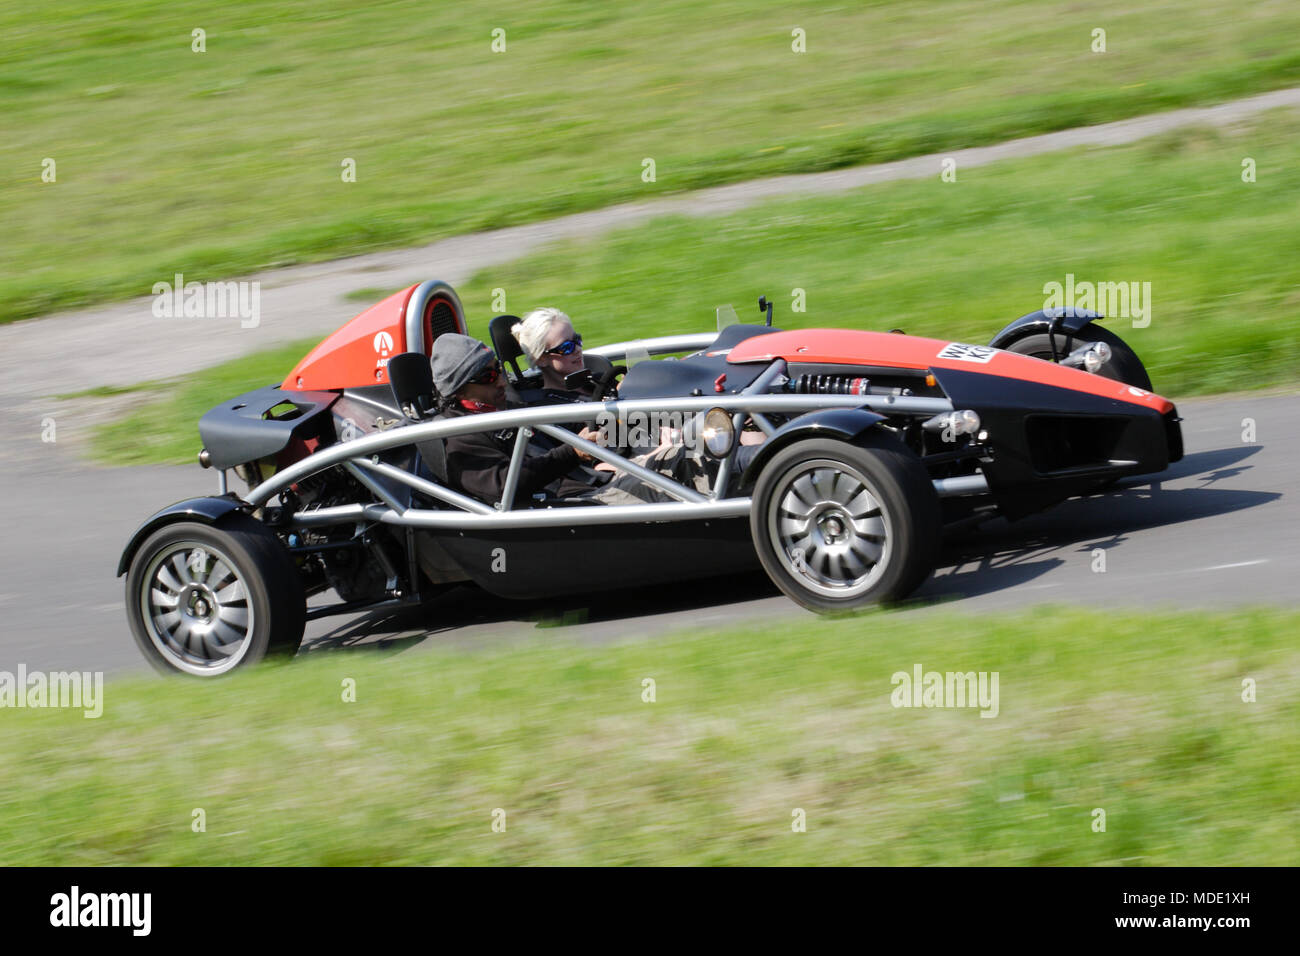 Ariel Atom lightweight sports car or track car driving fast on the UK public roads. Ariel Atoms have a visible car exoskeleton. - Stock Image